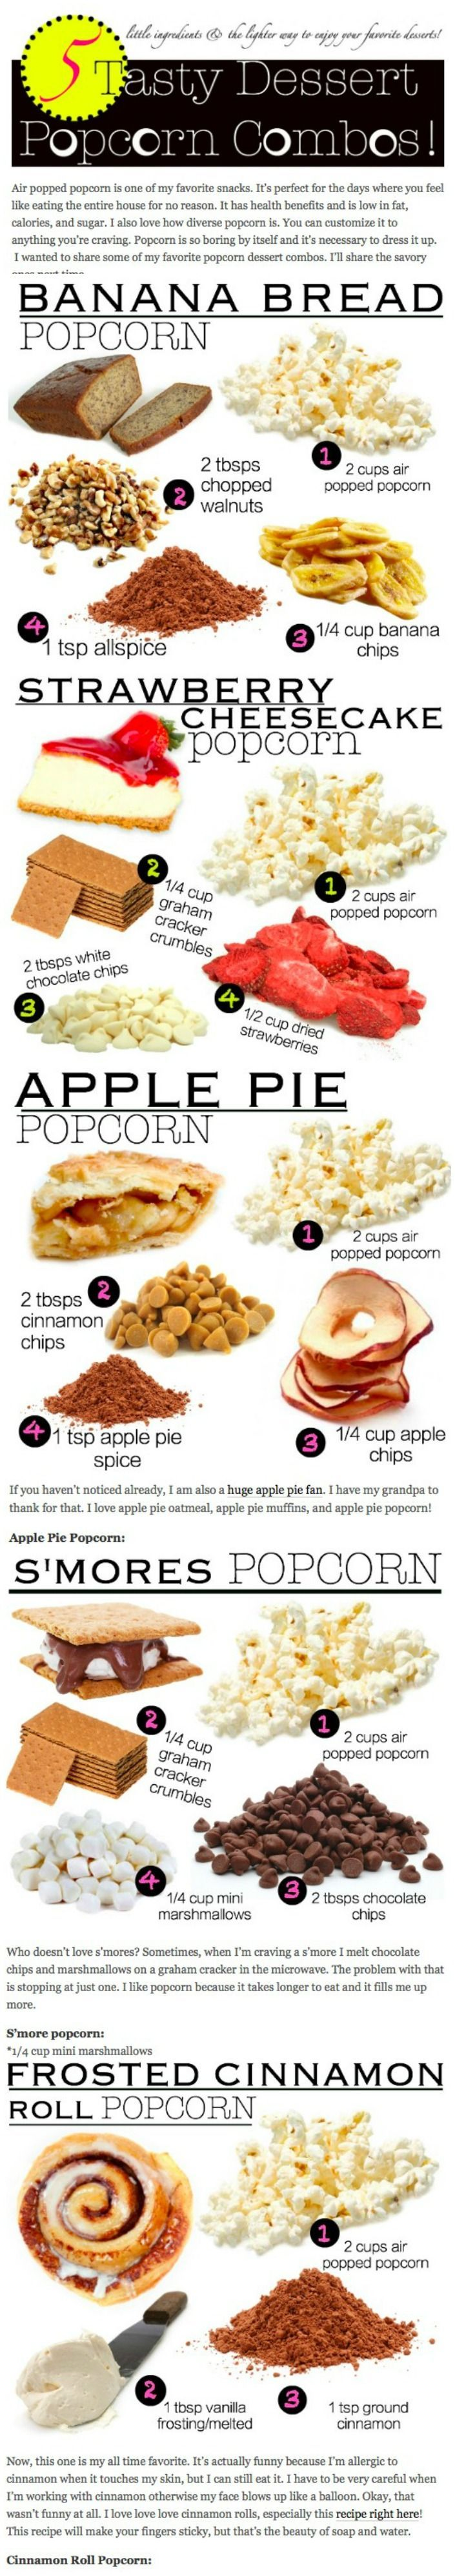 Delicious popcorn sweet popcorn recipes based on banana bread, s'mores, cinnamon rolls and more!